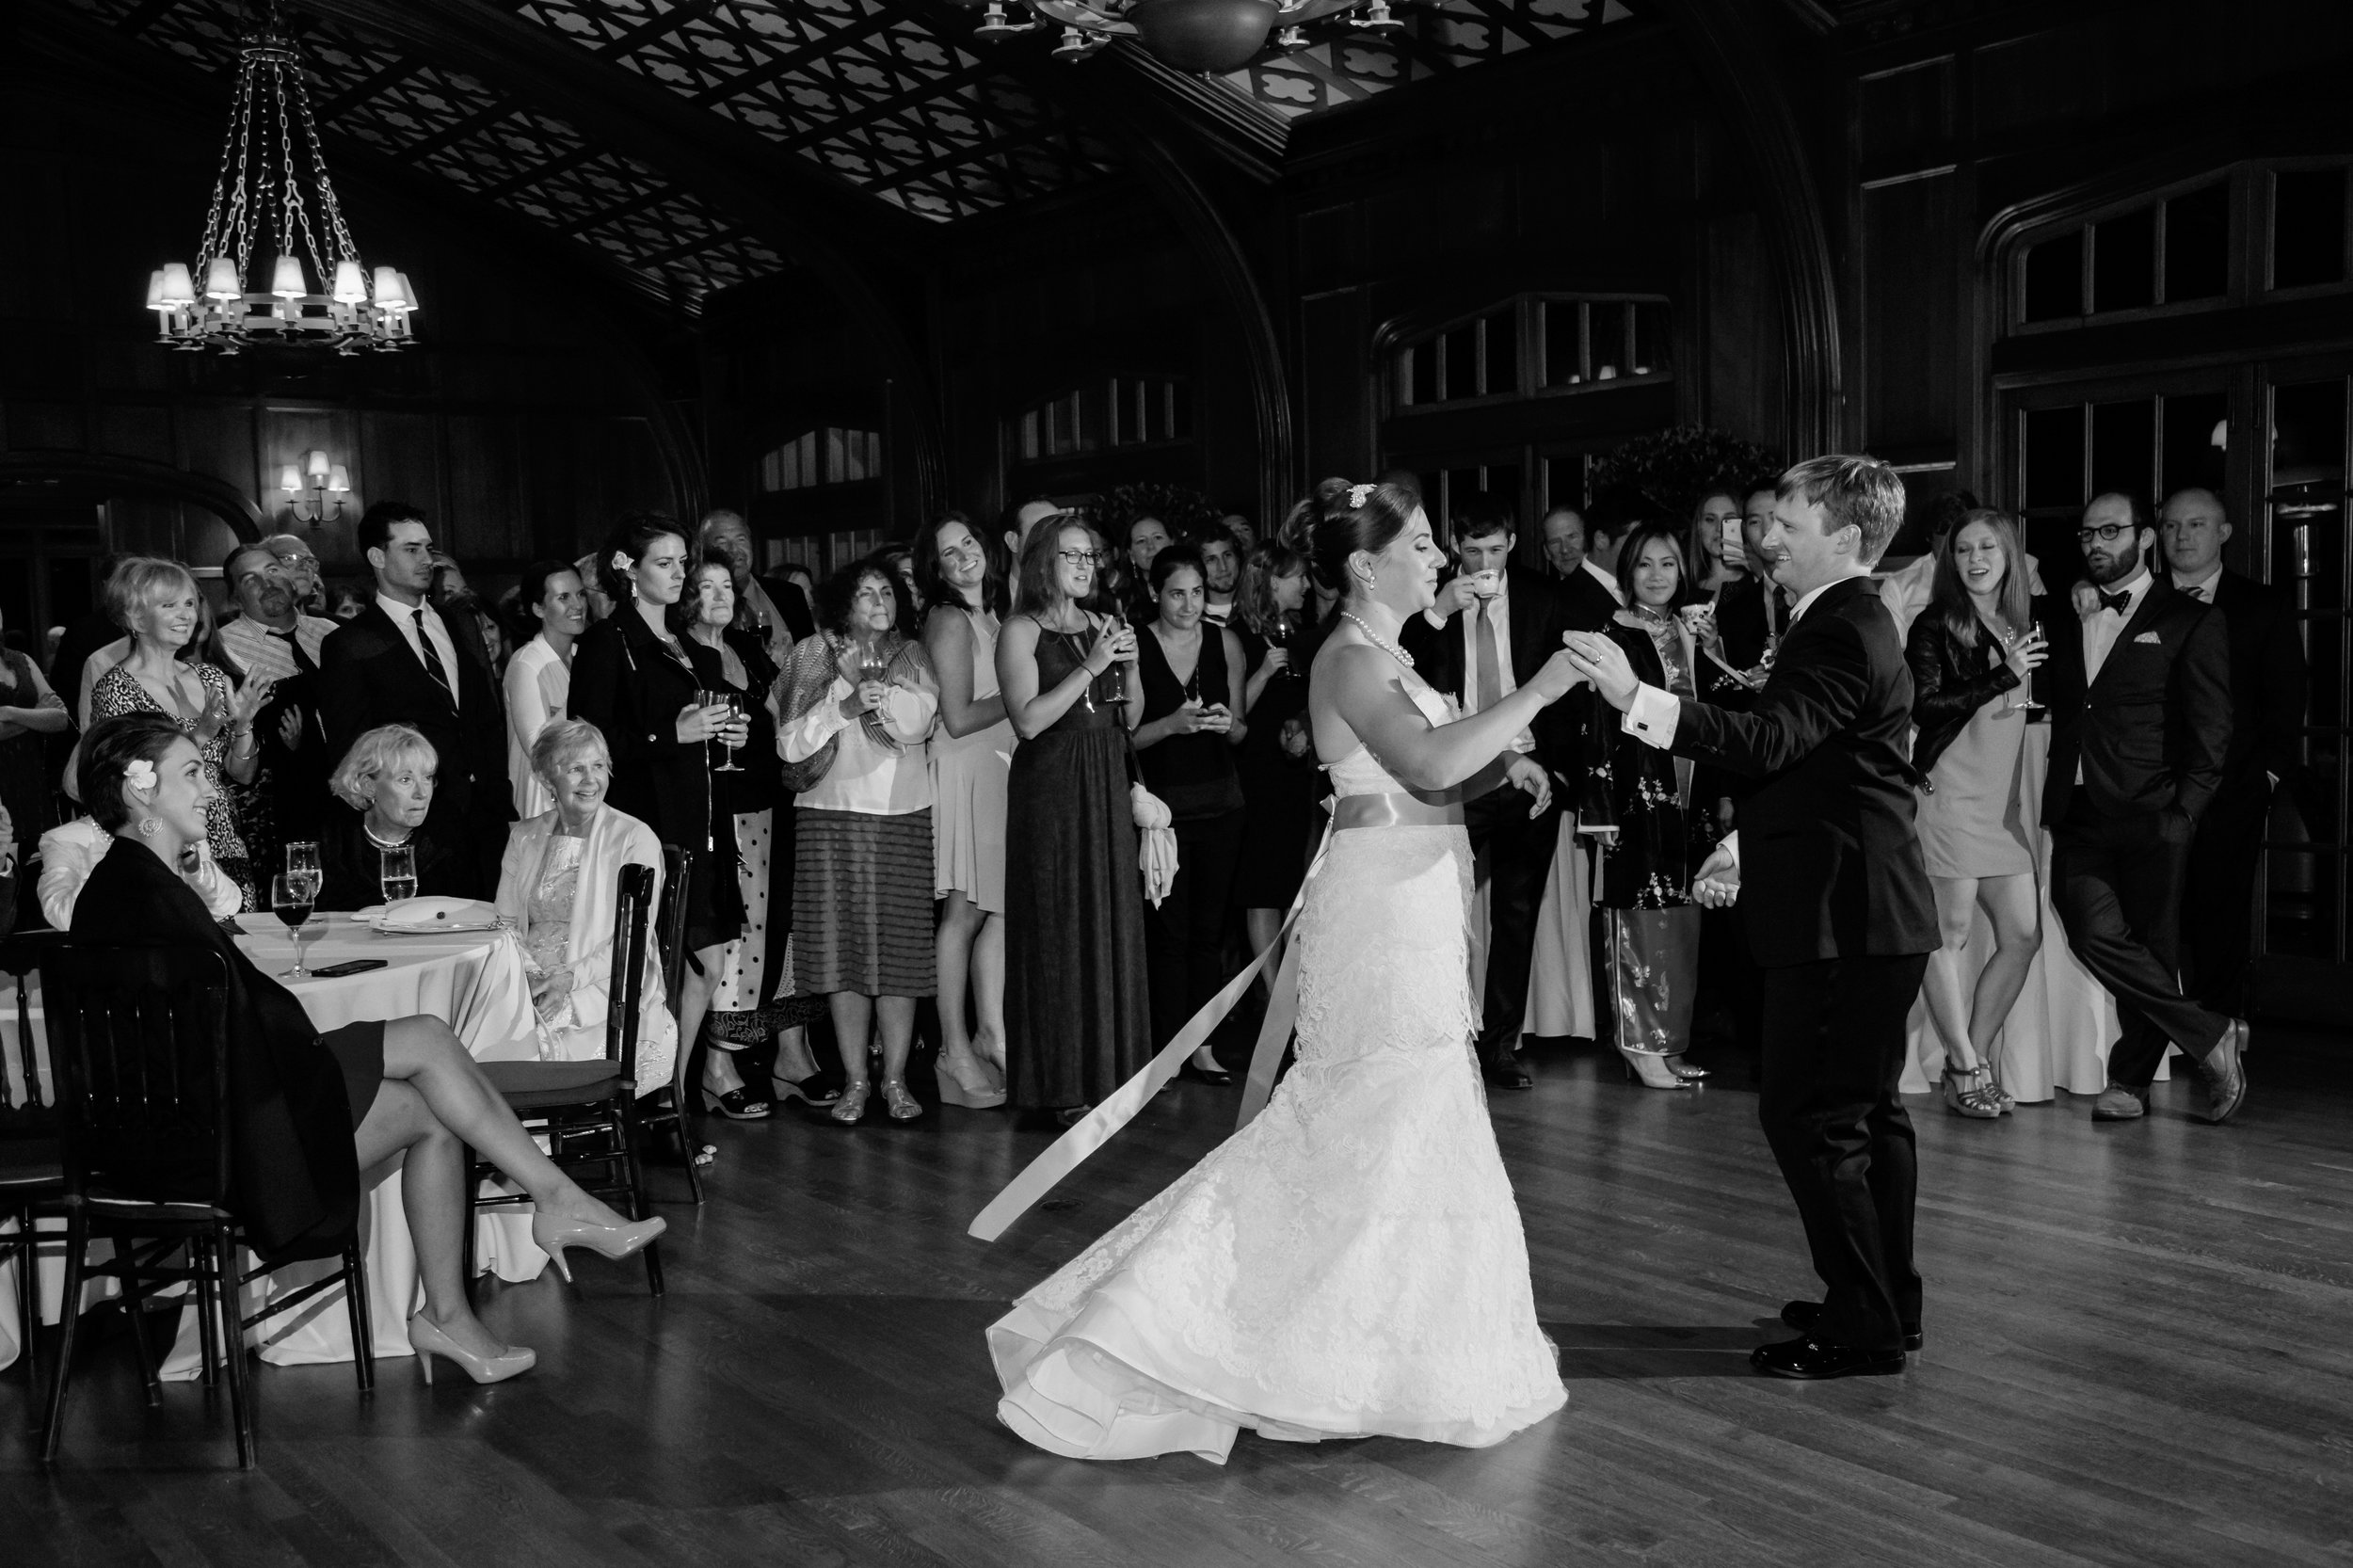 LaurenandMasonWedding-960BW.jpg